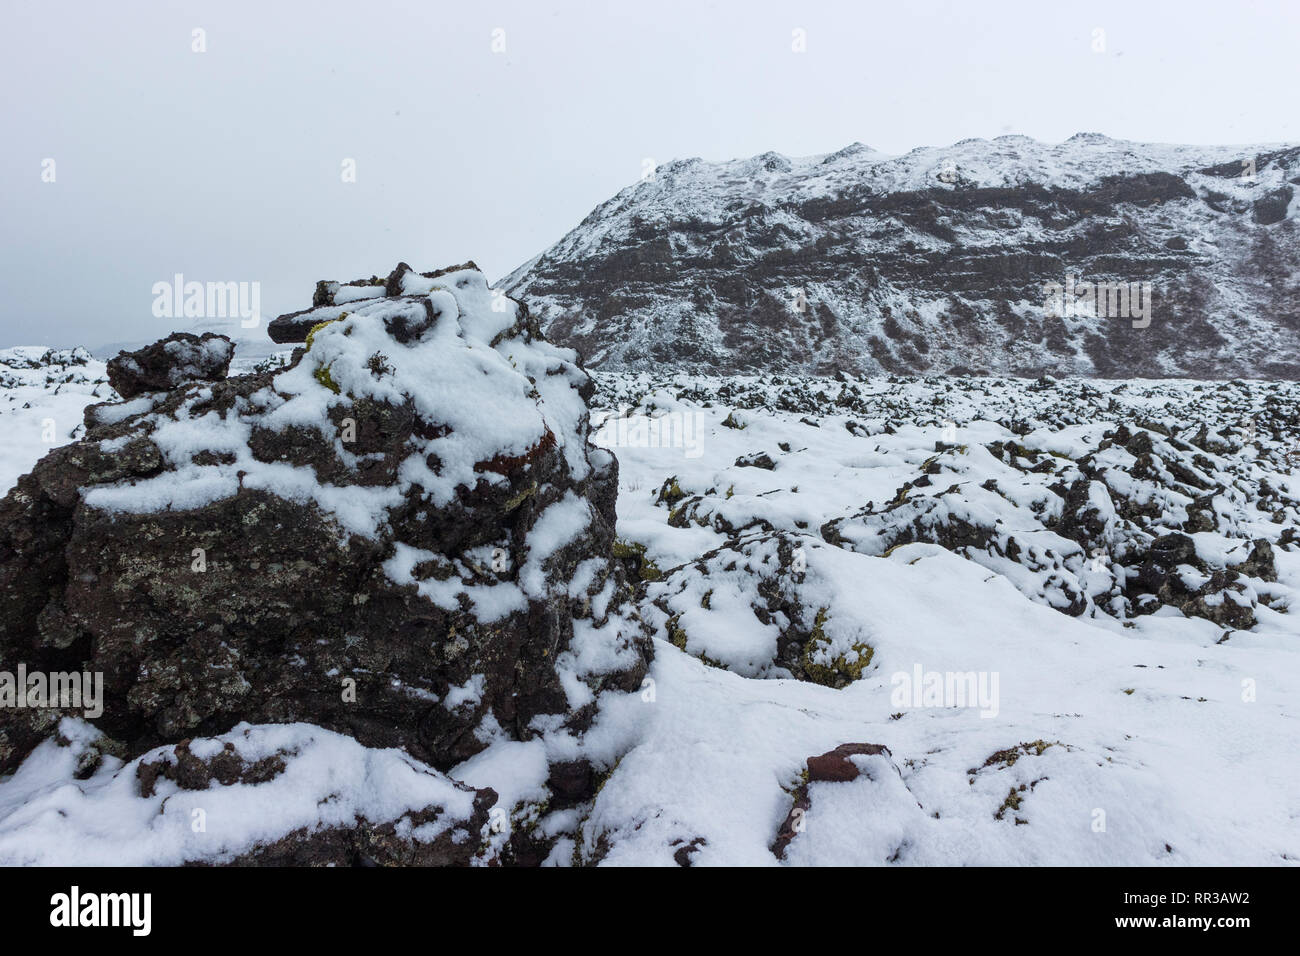 Lava field in a blizzard at Reykjanes peninsula, Iceland, Europe - Stock Image